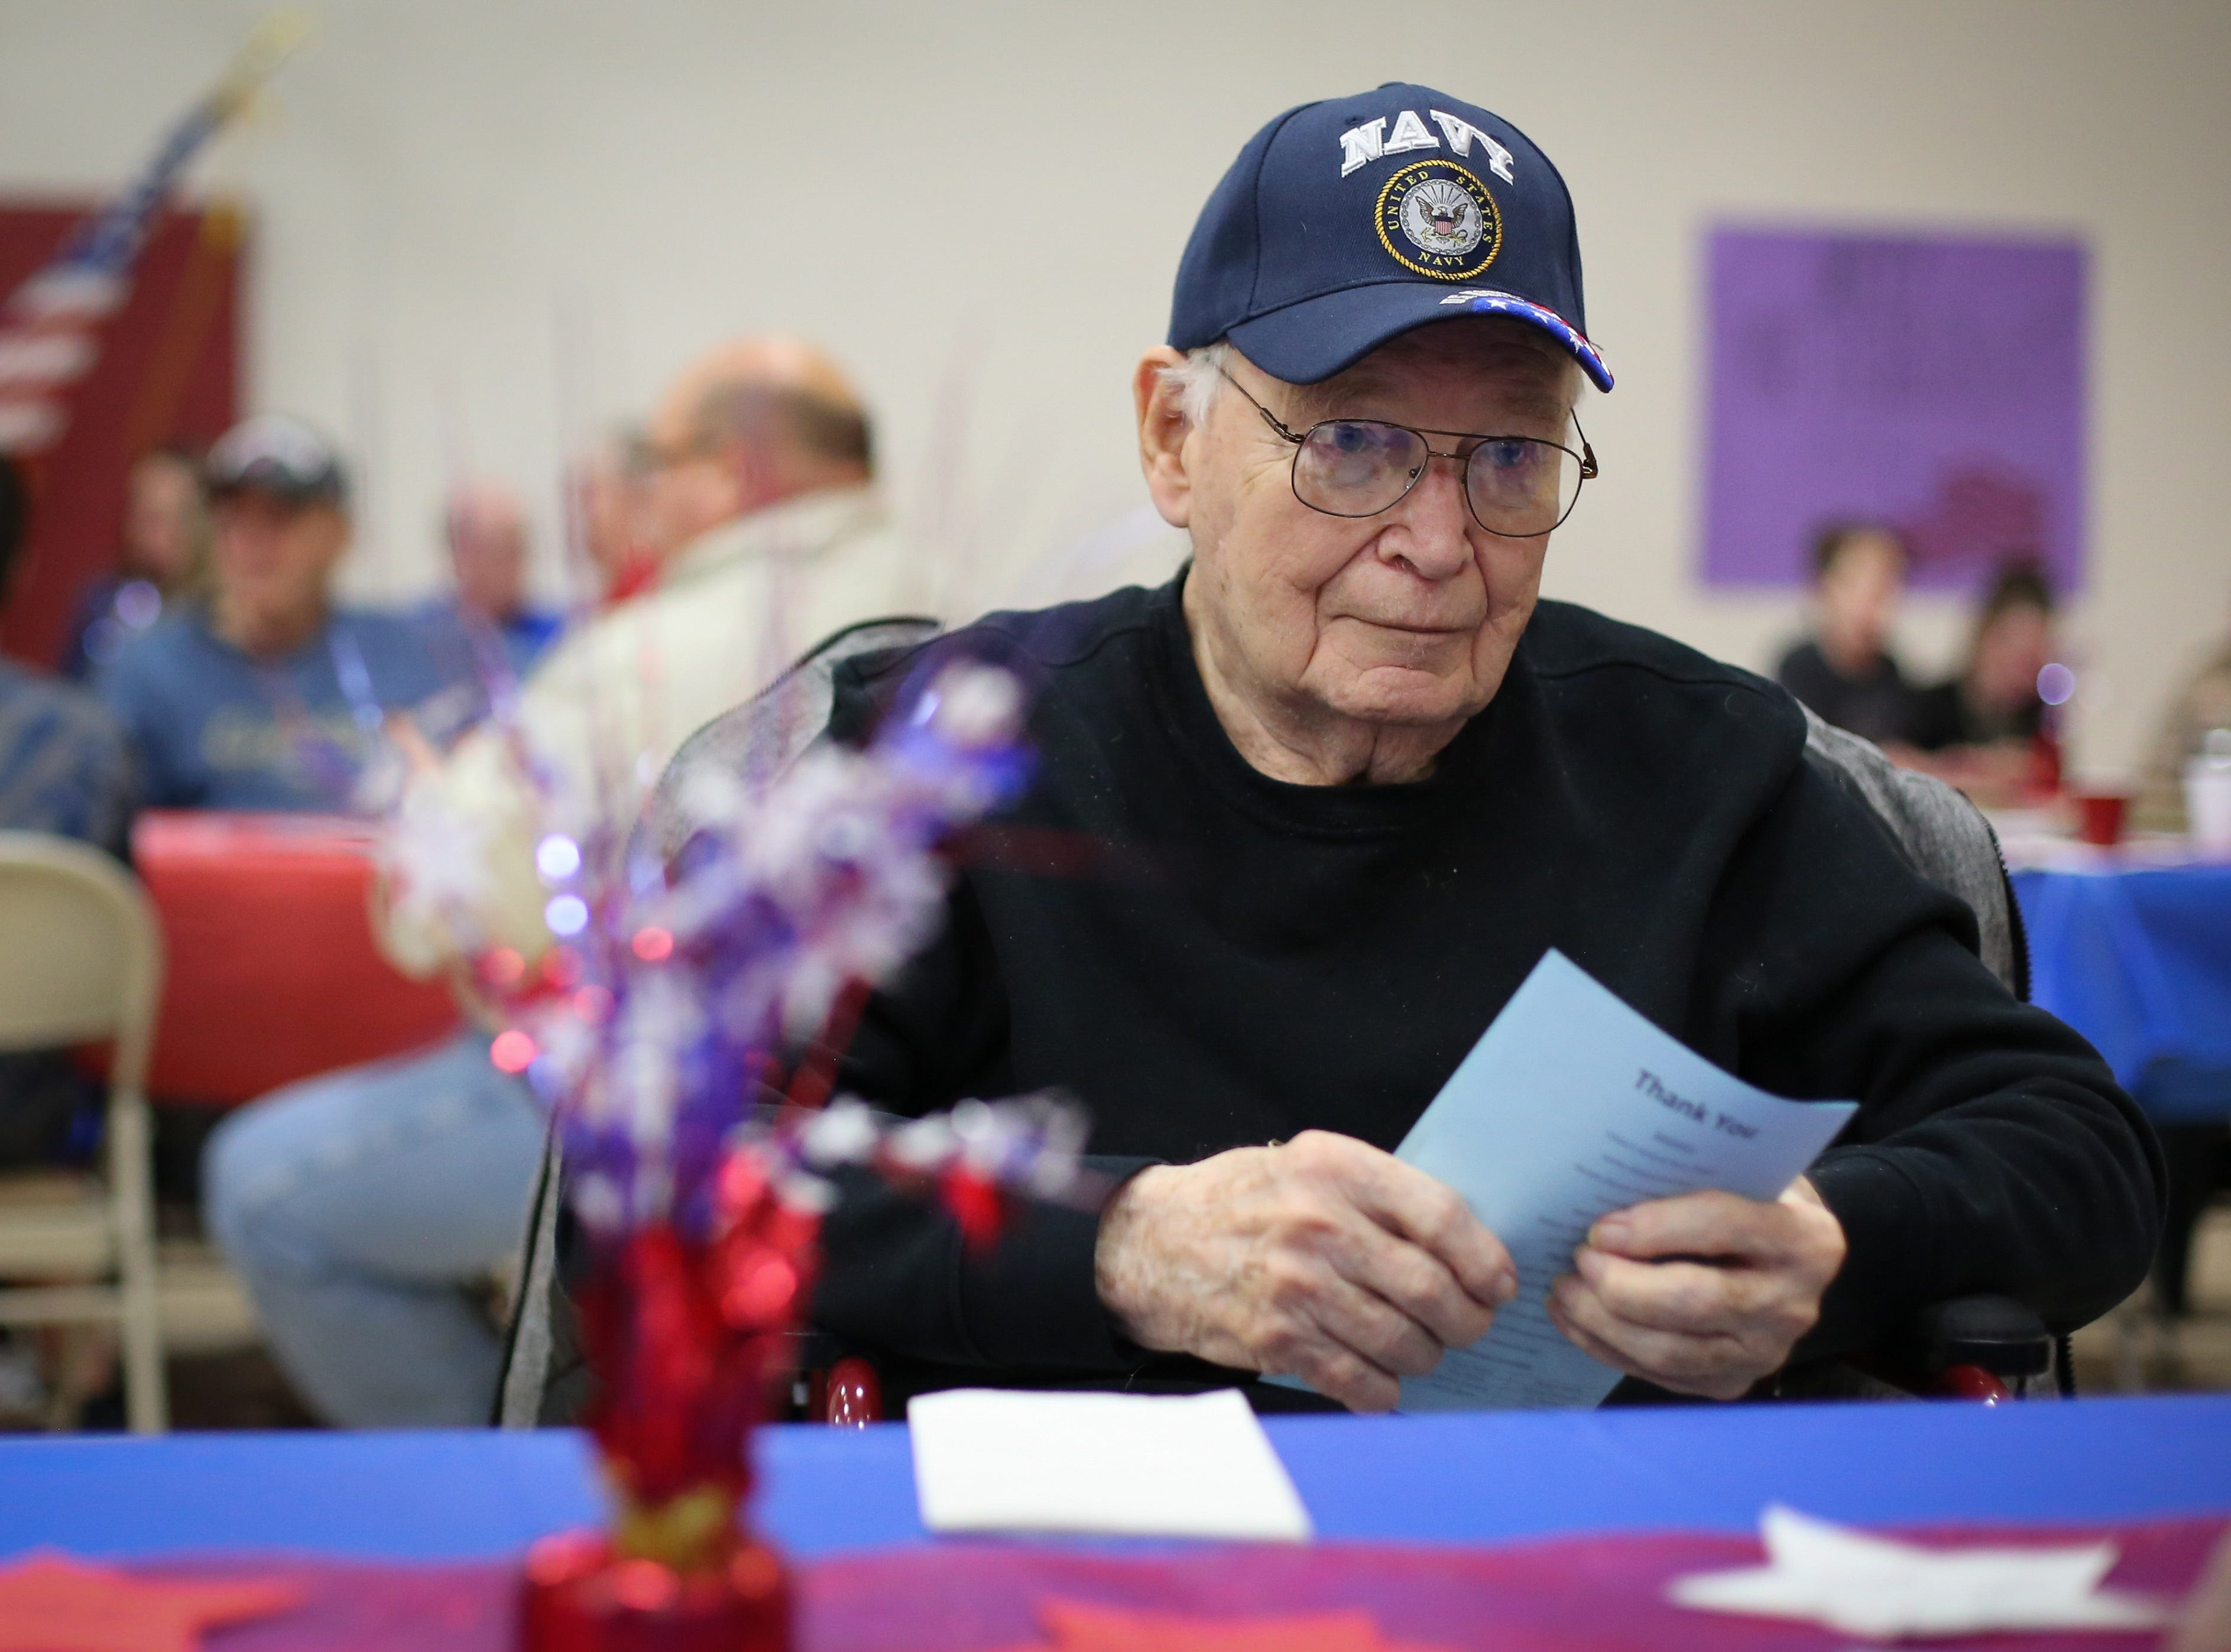 Jack Maul, a naval veteran, looks on during the Veterans Day Breakfast at Northview Middle School on Wednesday, Nov. 14, 2018 in Ankeny, Iowa. Middle school students hosted the veterans to share their gratitude before an assembly.